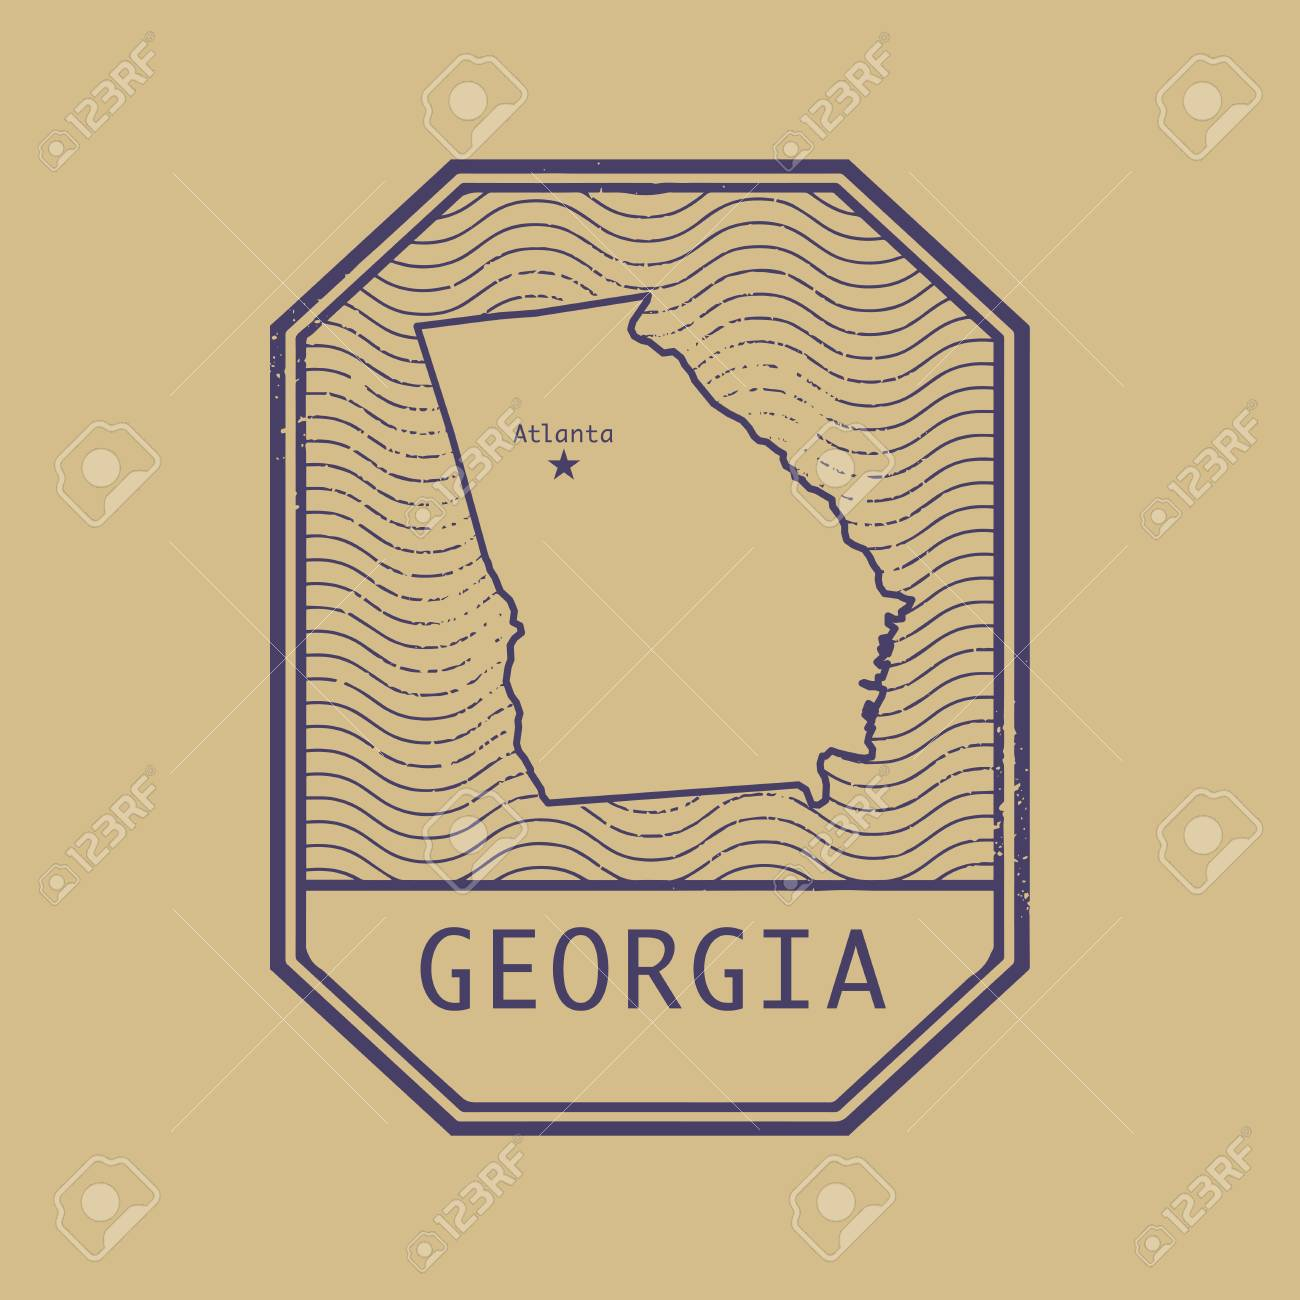 Map Of Georgia United States.Stamp With The Name And Map Of Georgia United States Vector